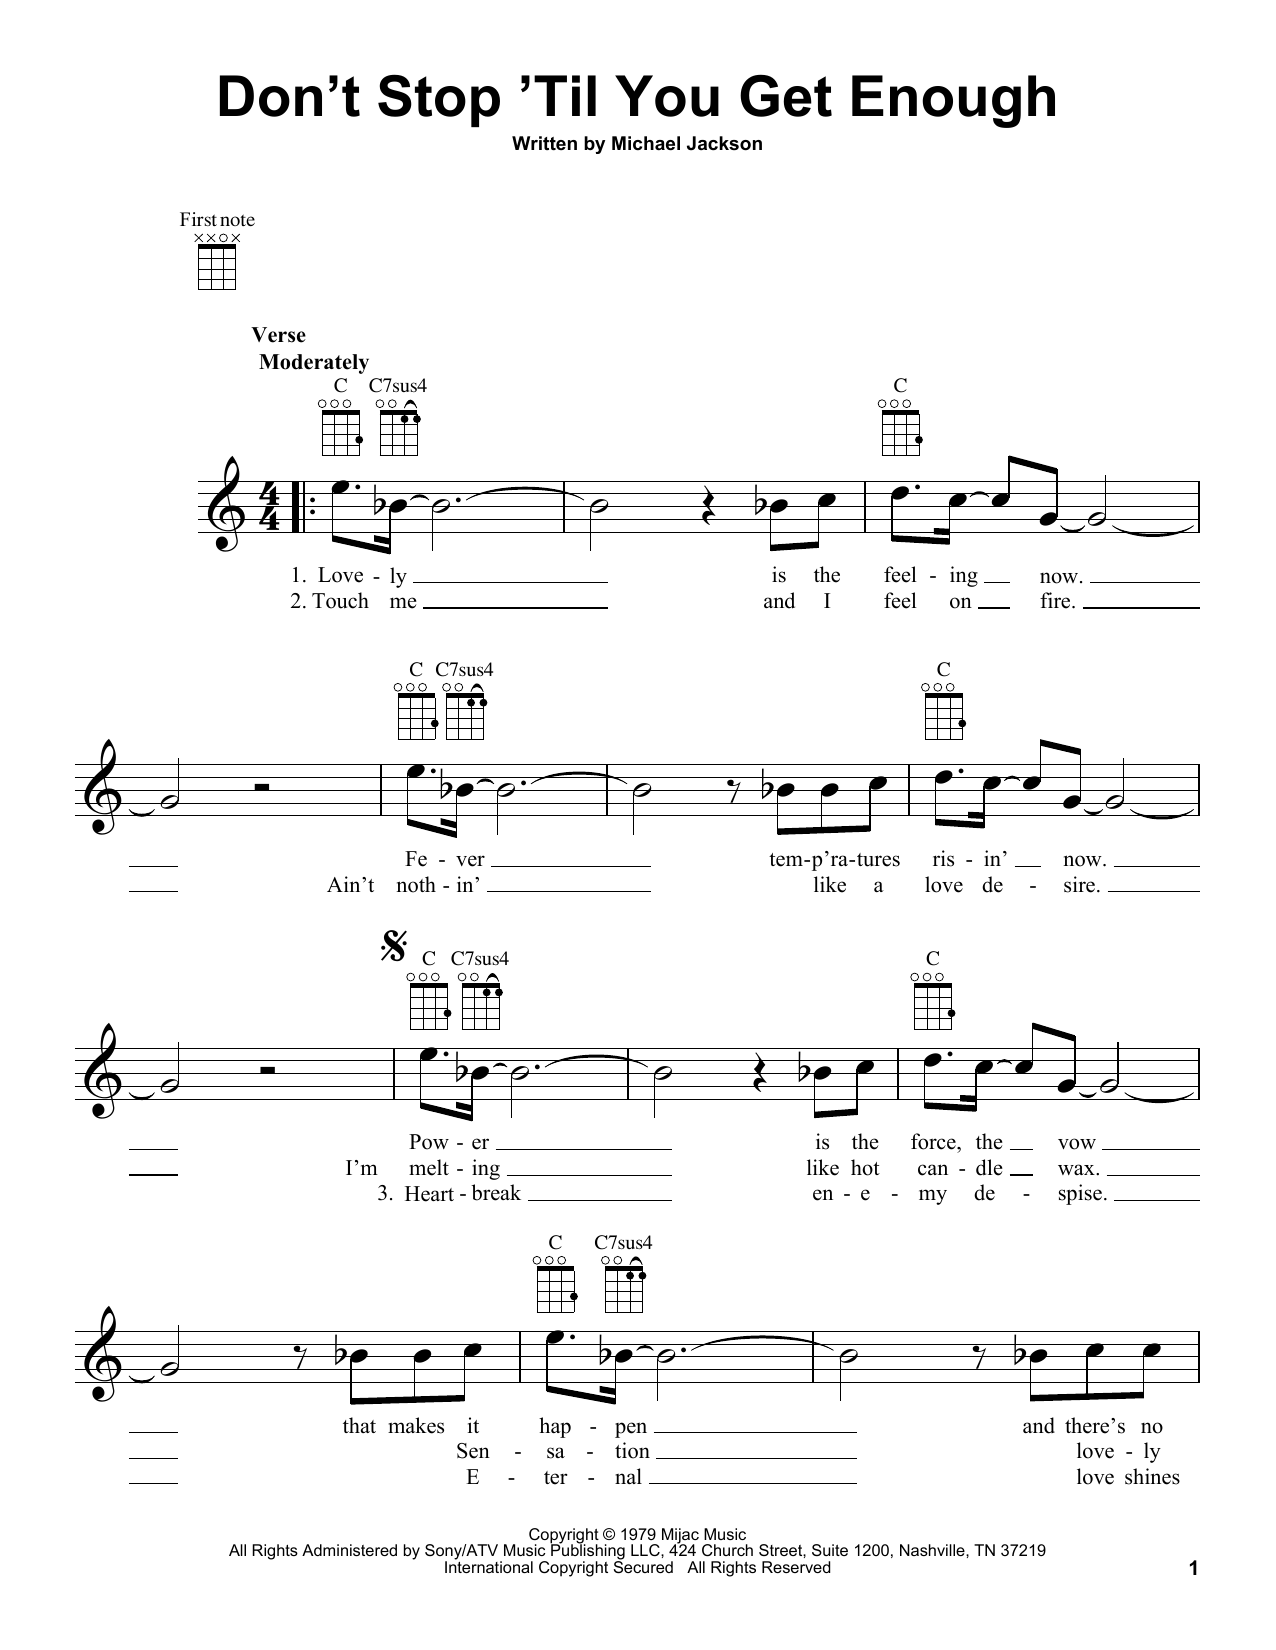 Tablature guitare Don't Stop 'Til You Get Enough de Michael Jackson - Ukulele